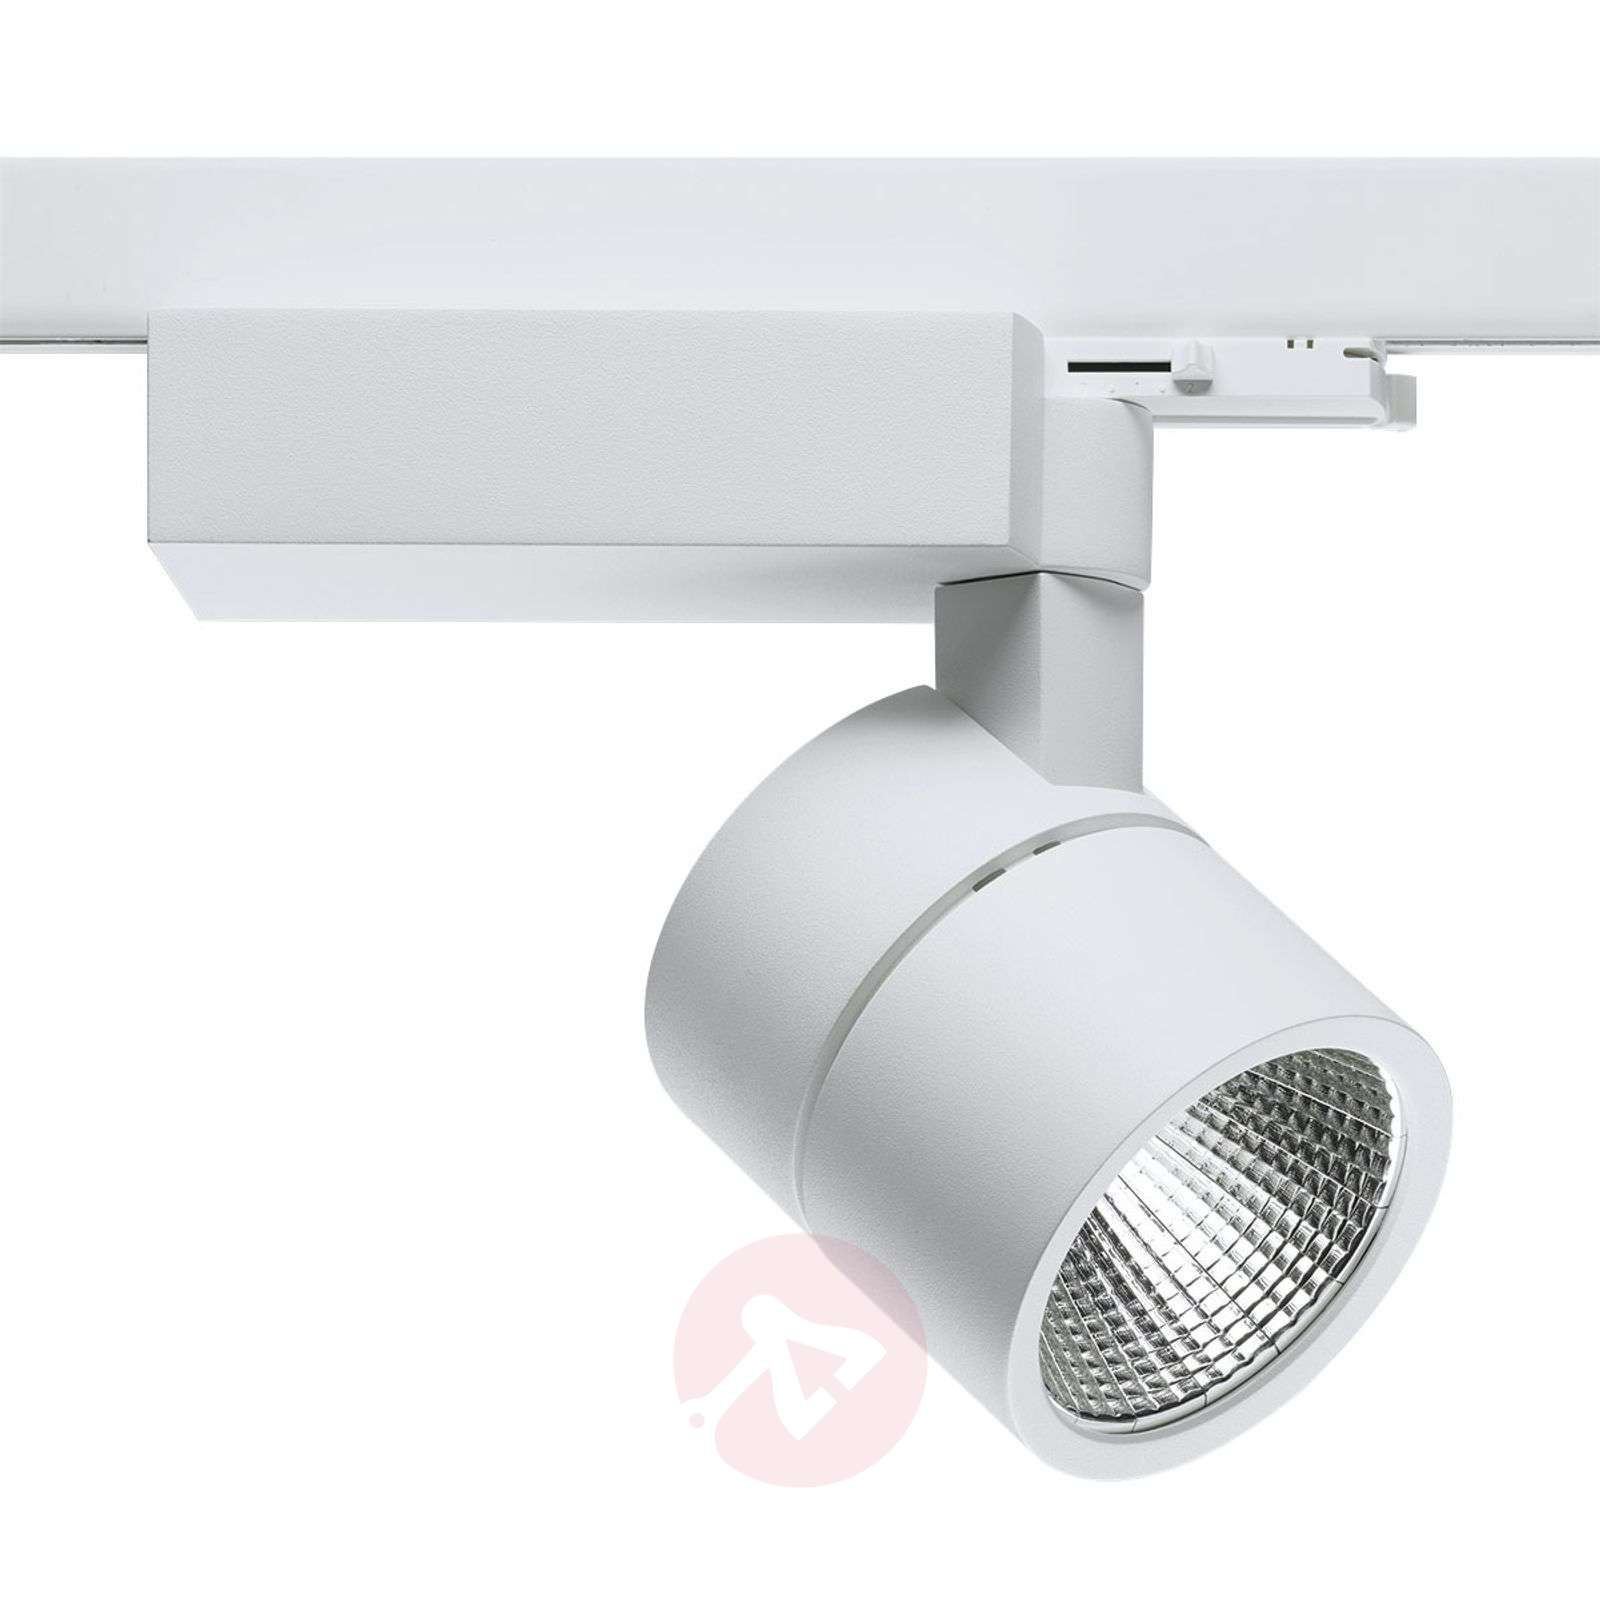 Beam LED spot voor 3-fasen stroomrail in wit-8034021X-01